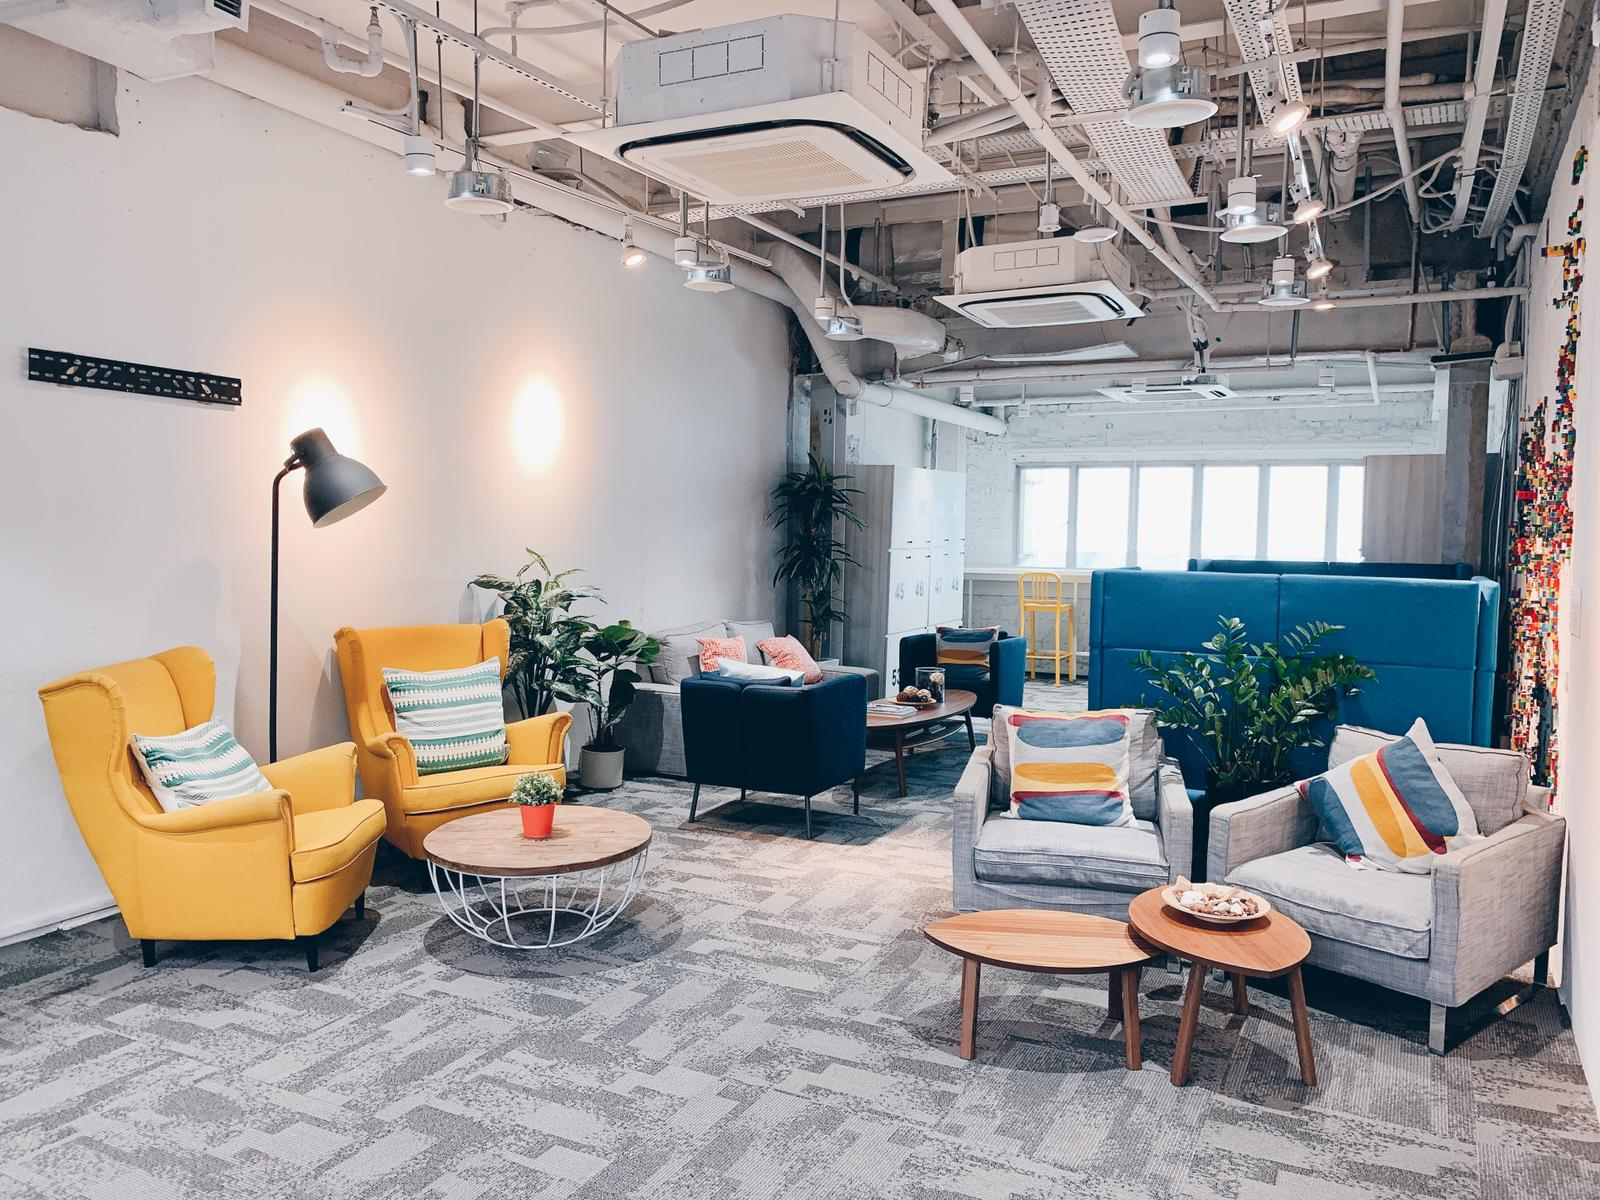 Coworking space fintech startup singapore : found8